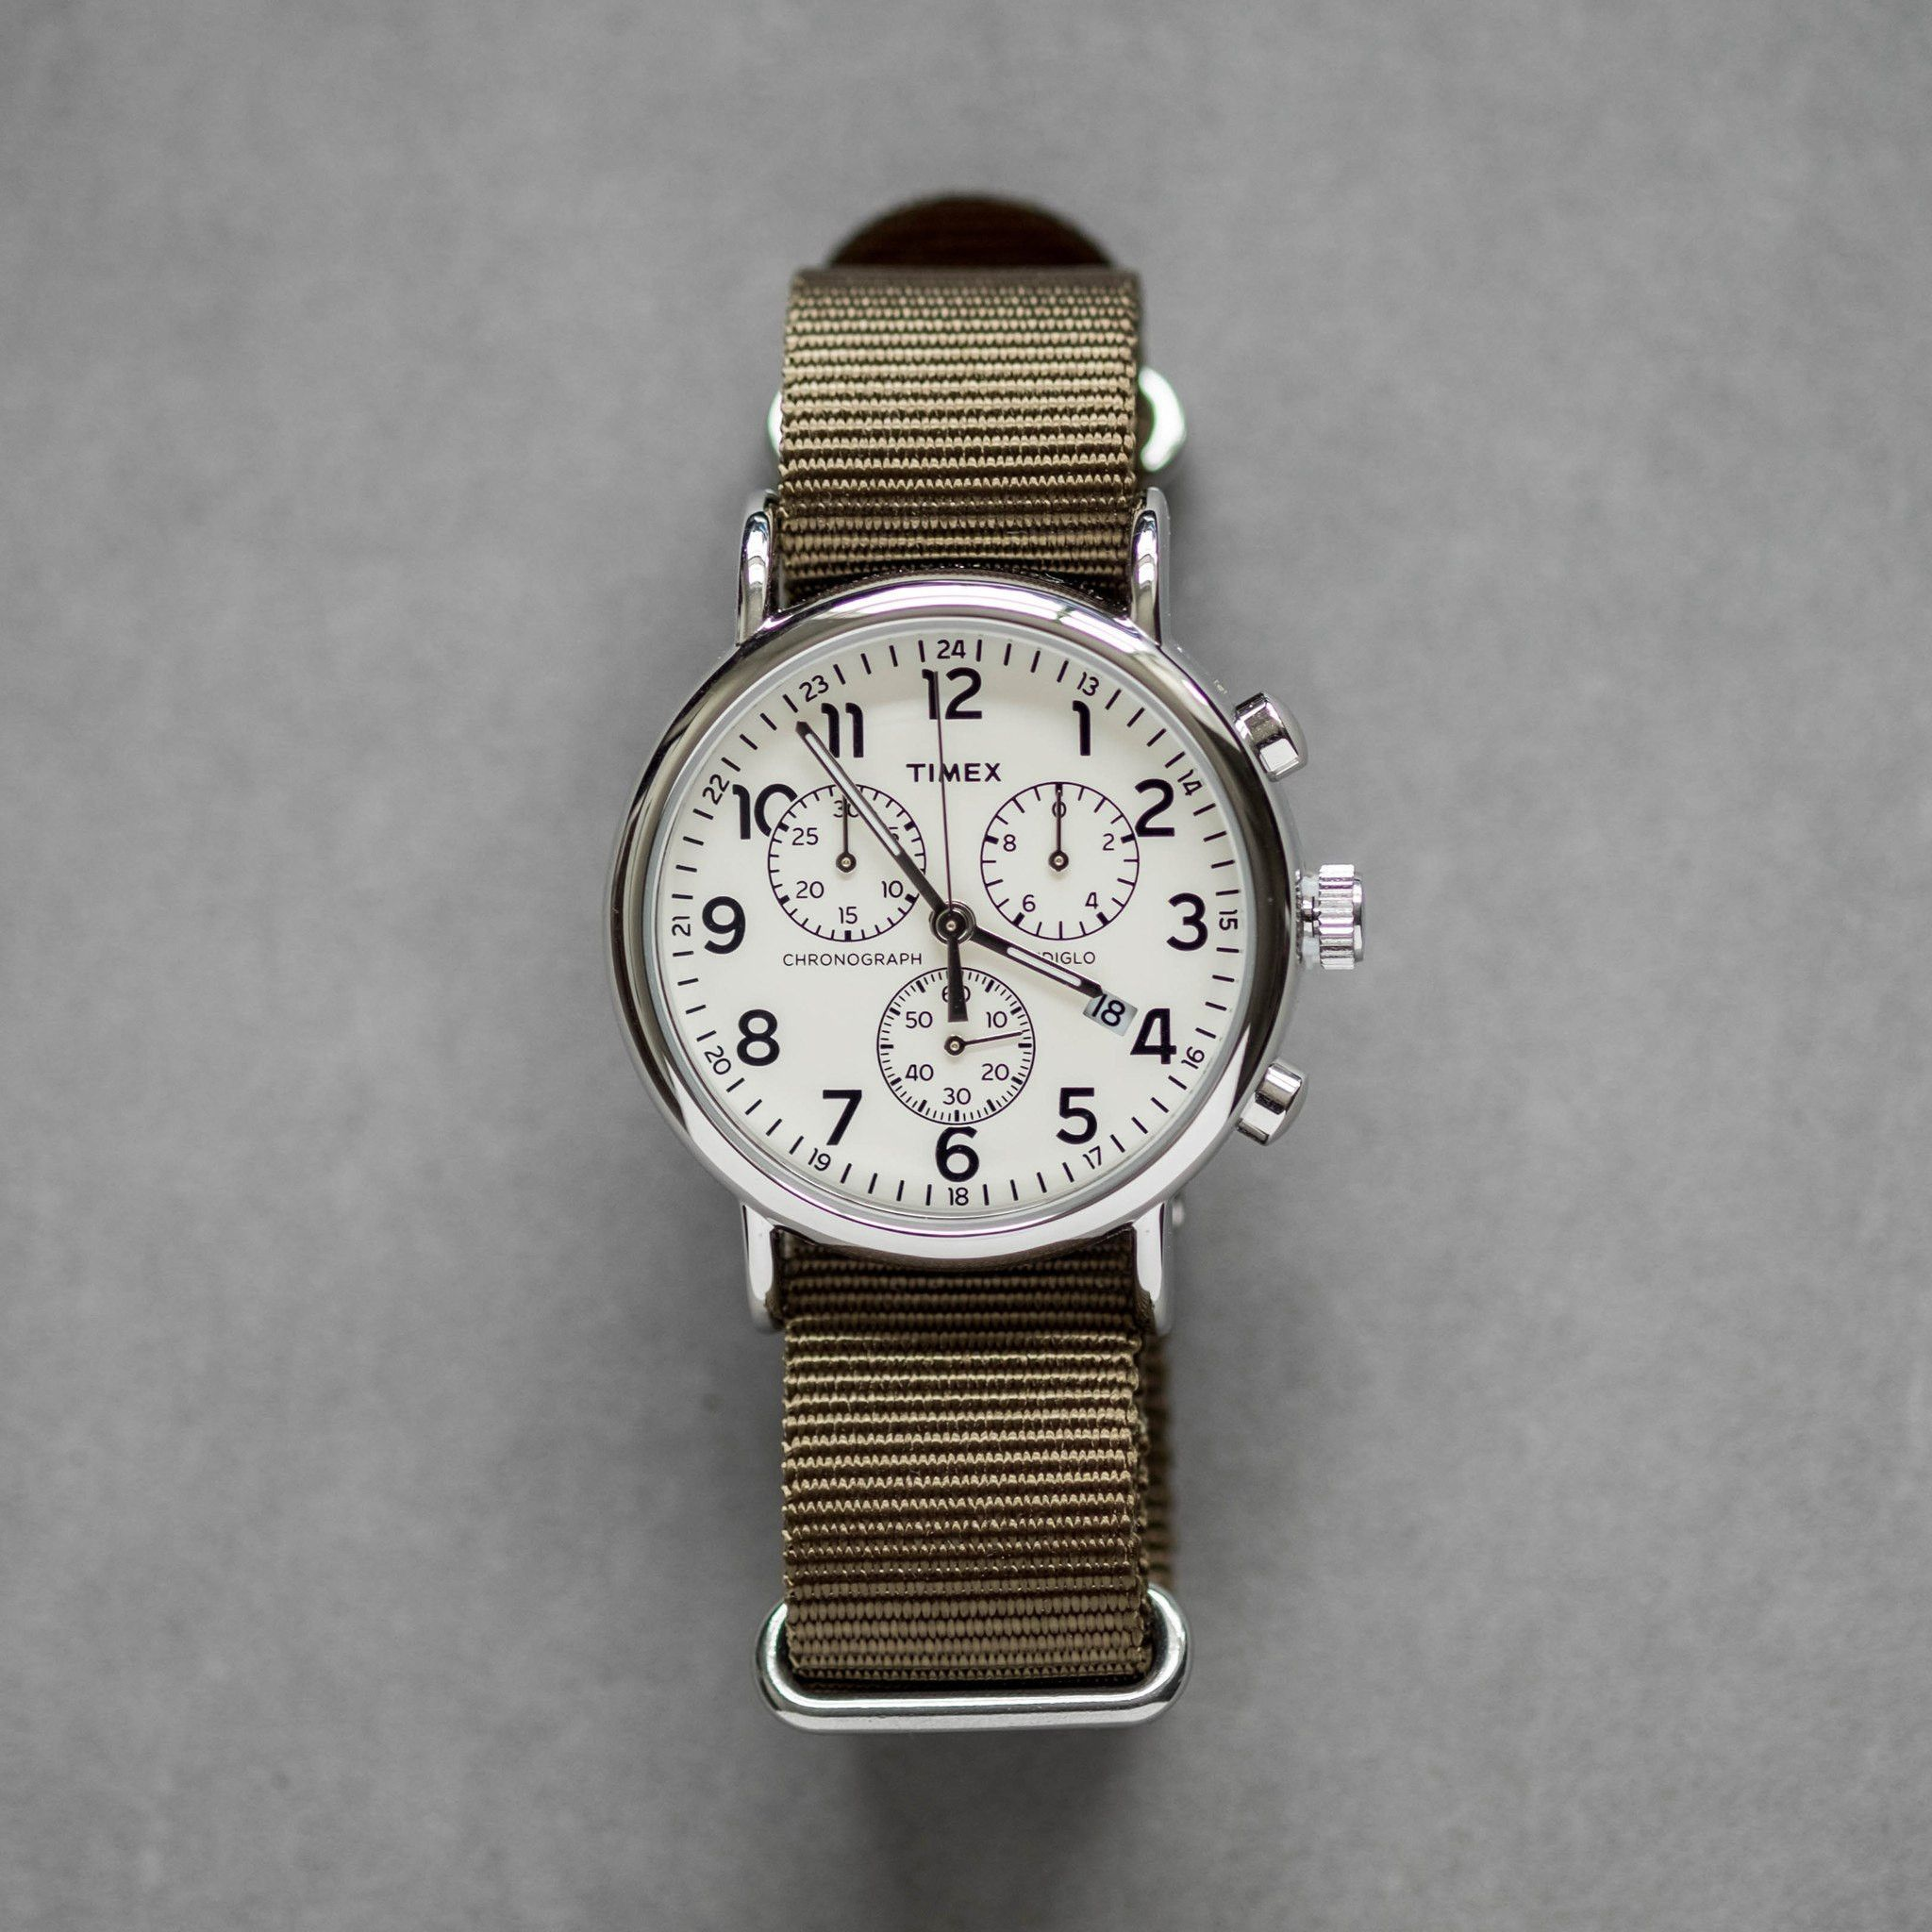 fe9c4a3231d8 Timex Weekender Chronograph Watch - Olive Green Nylon Strap Relojes Timex